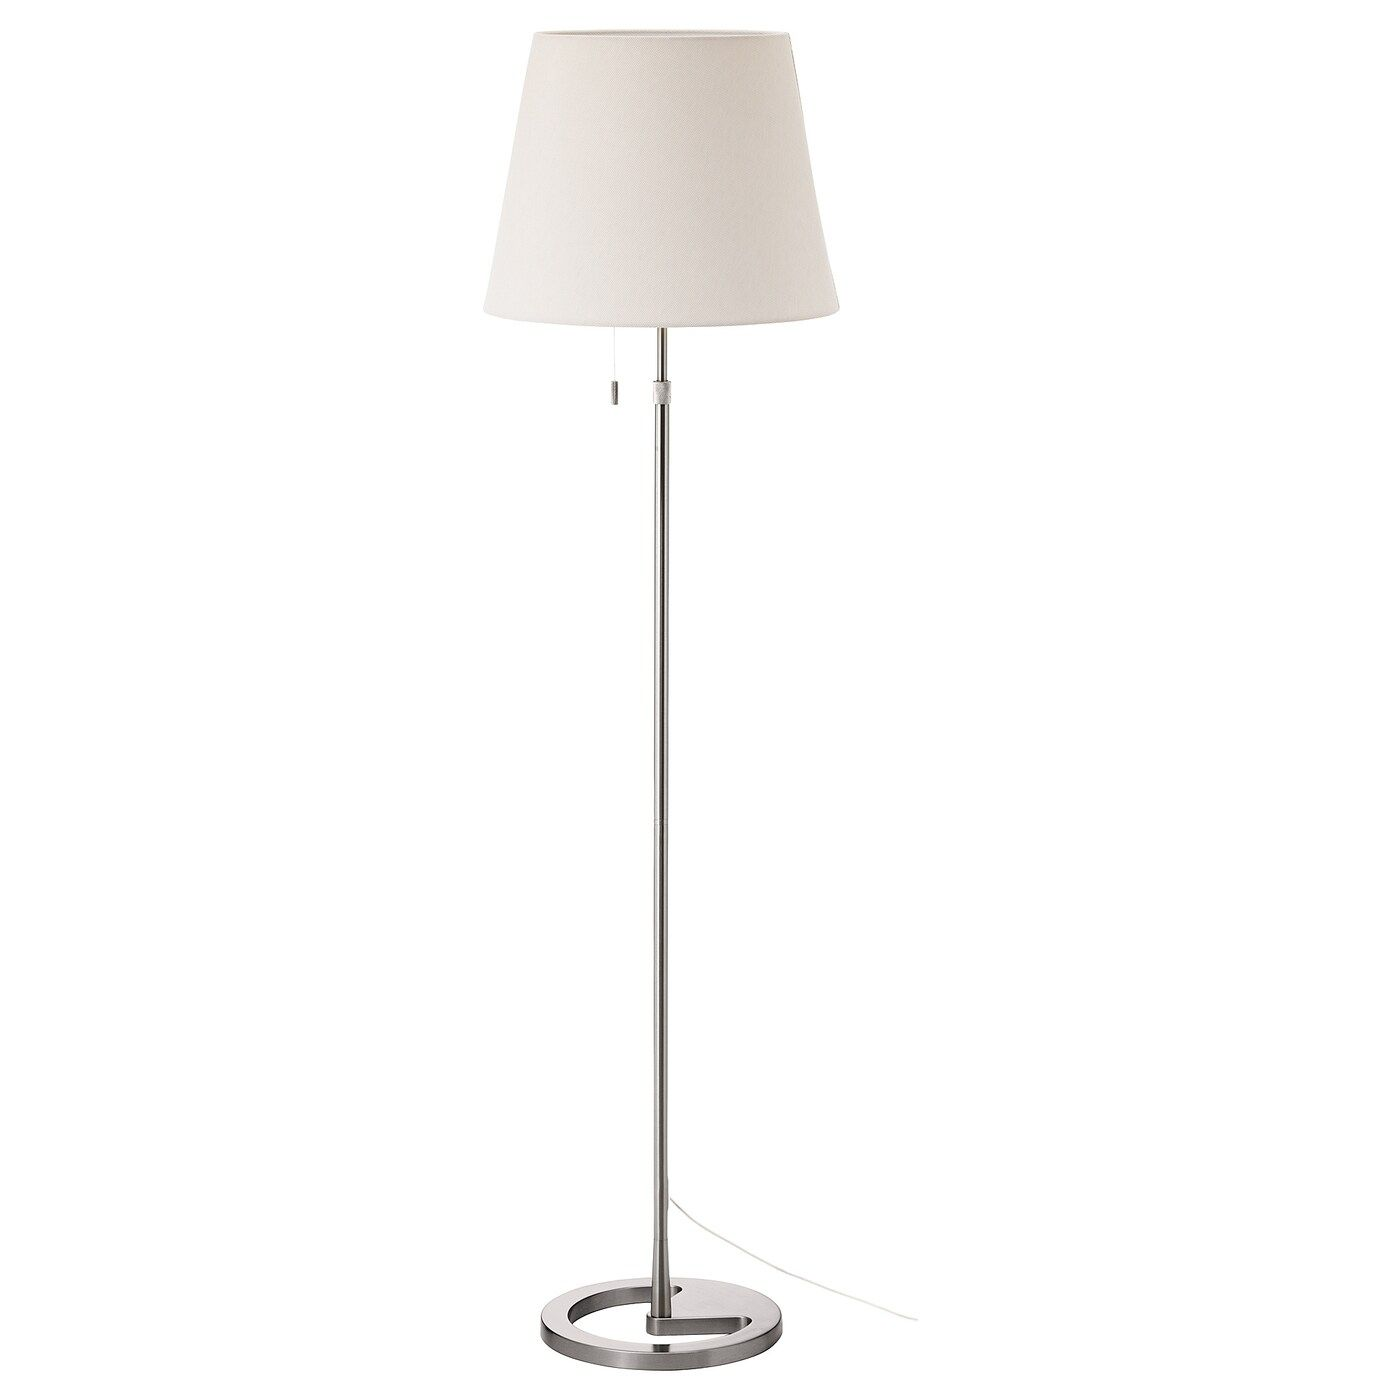 Https Www Ikea Com Gb En Images Products Nyfors Floor Lamp Nickel Plated White 0684442 Pe721181 S5 Jpg F Xxxl Floor Lamp Ikea Floor Lamp Lamp